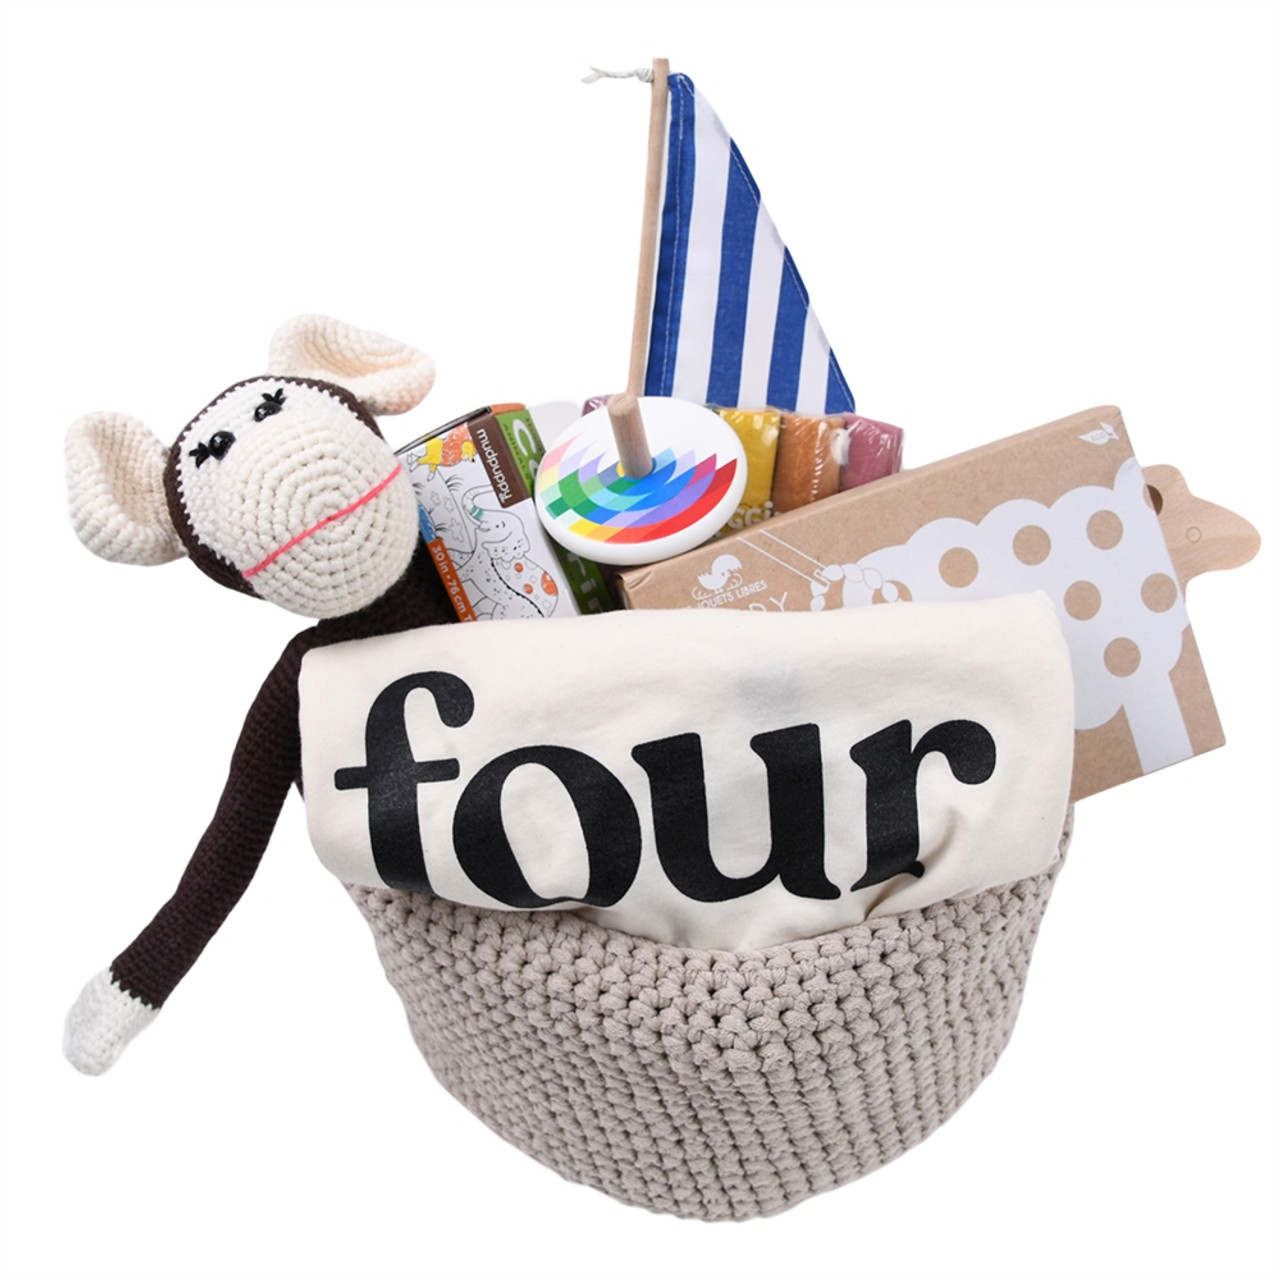 Gift Basket for 4 Year Old - All Four You